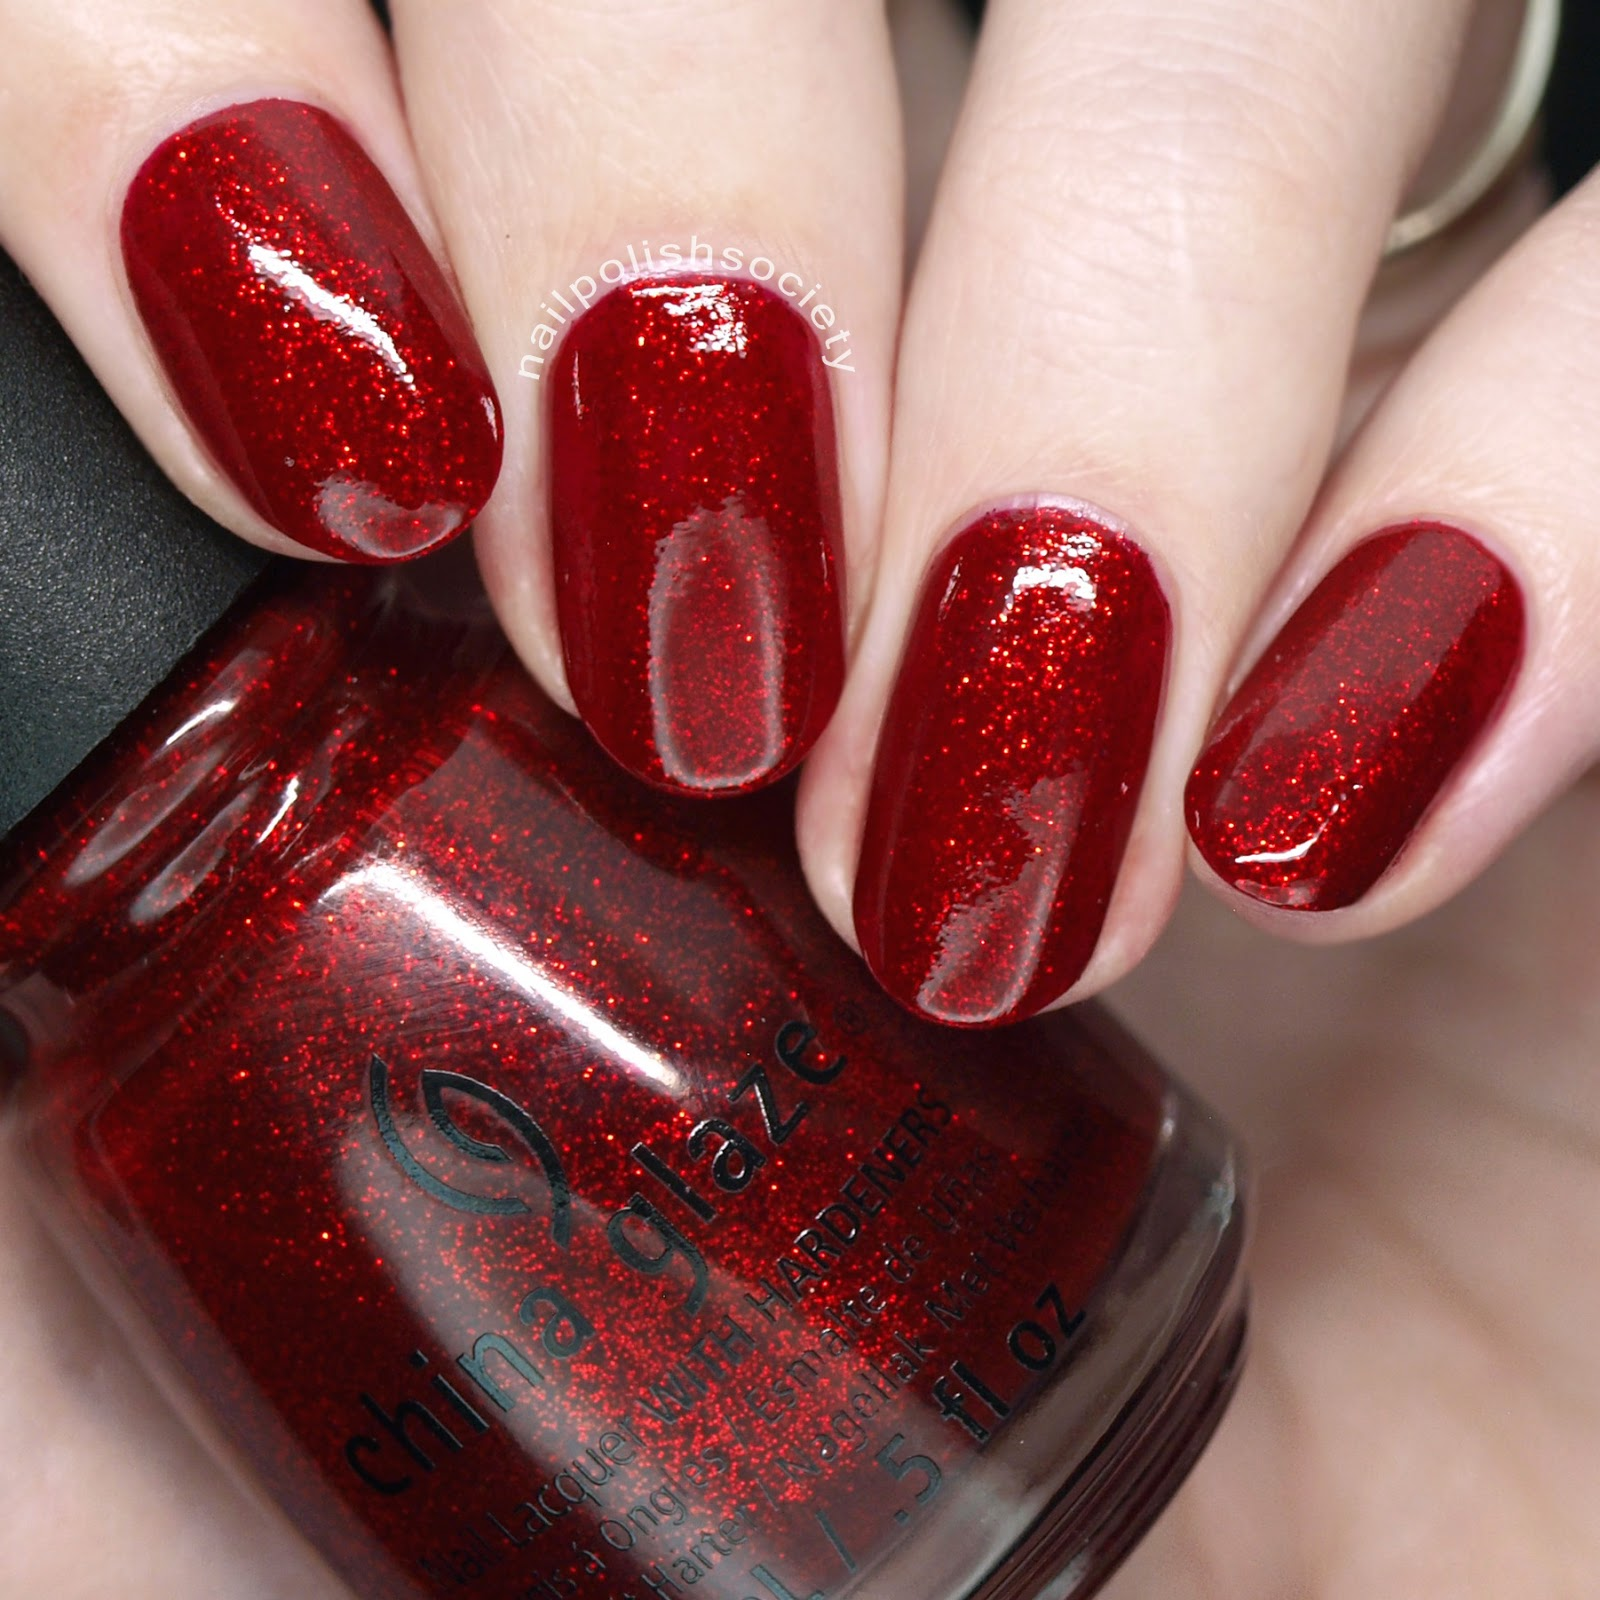 Nail Polish Society: 14 Perfect Pink and Red Polishes for ...